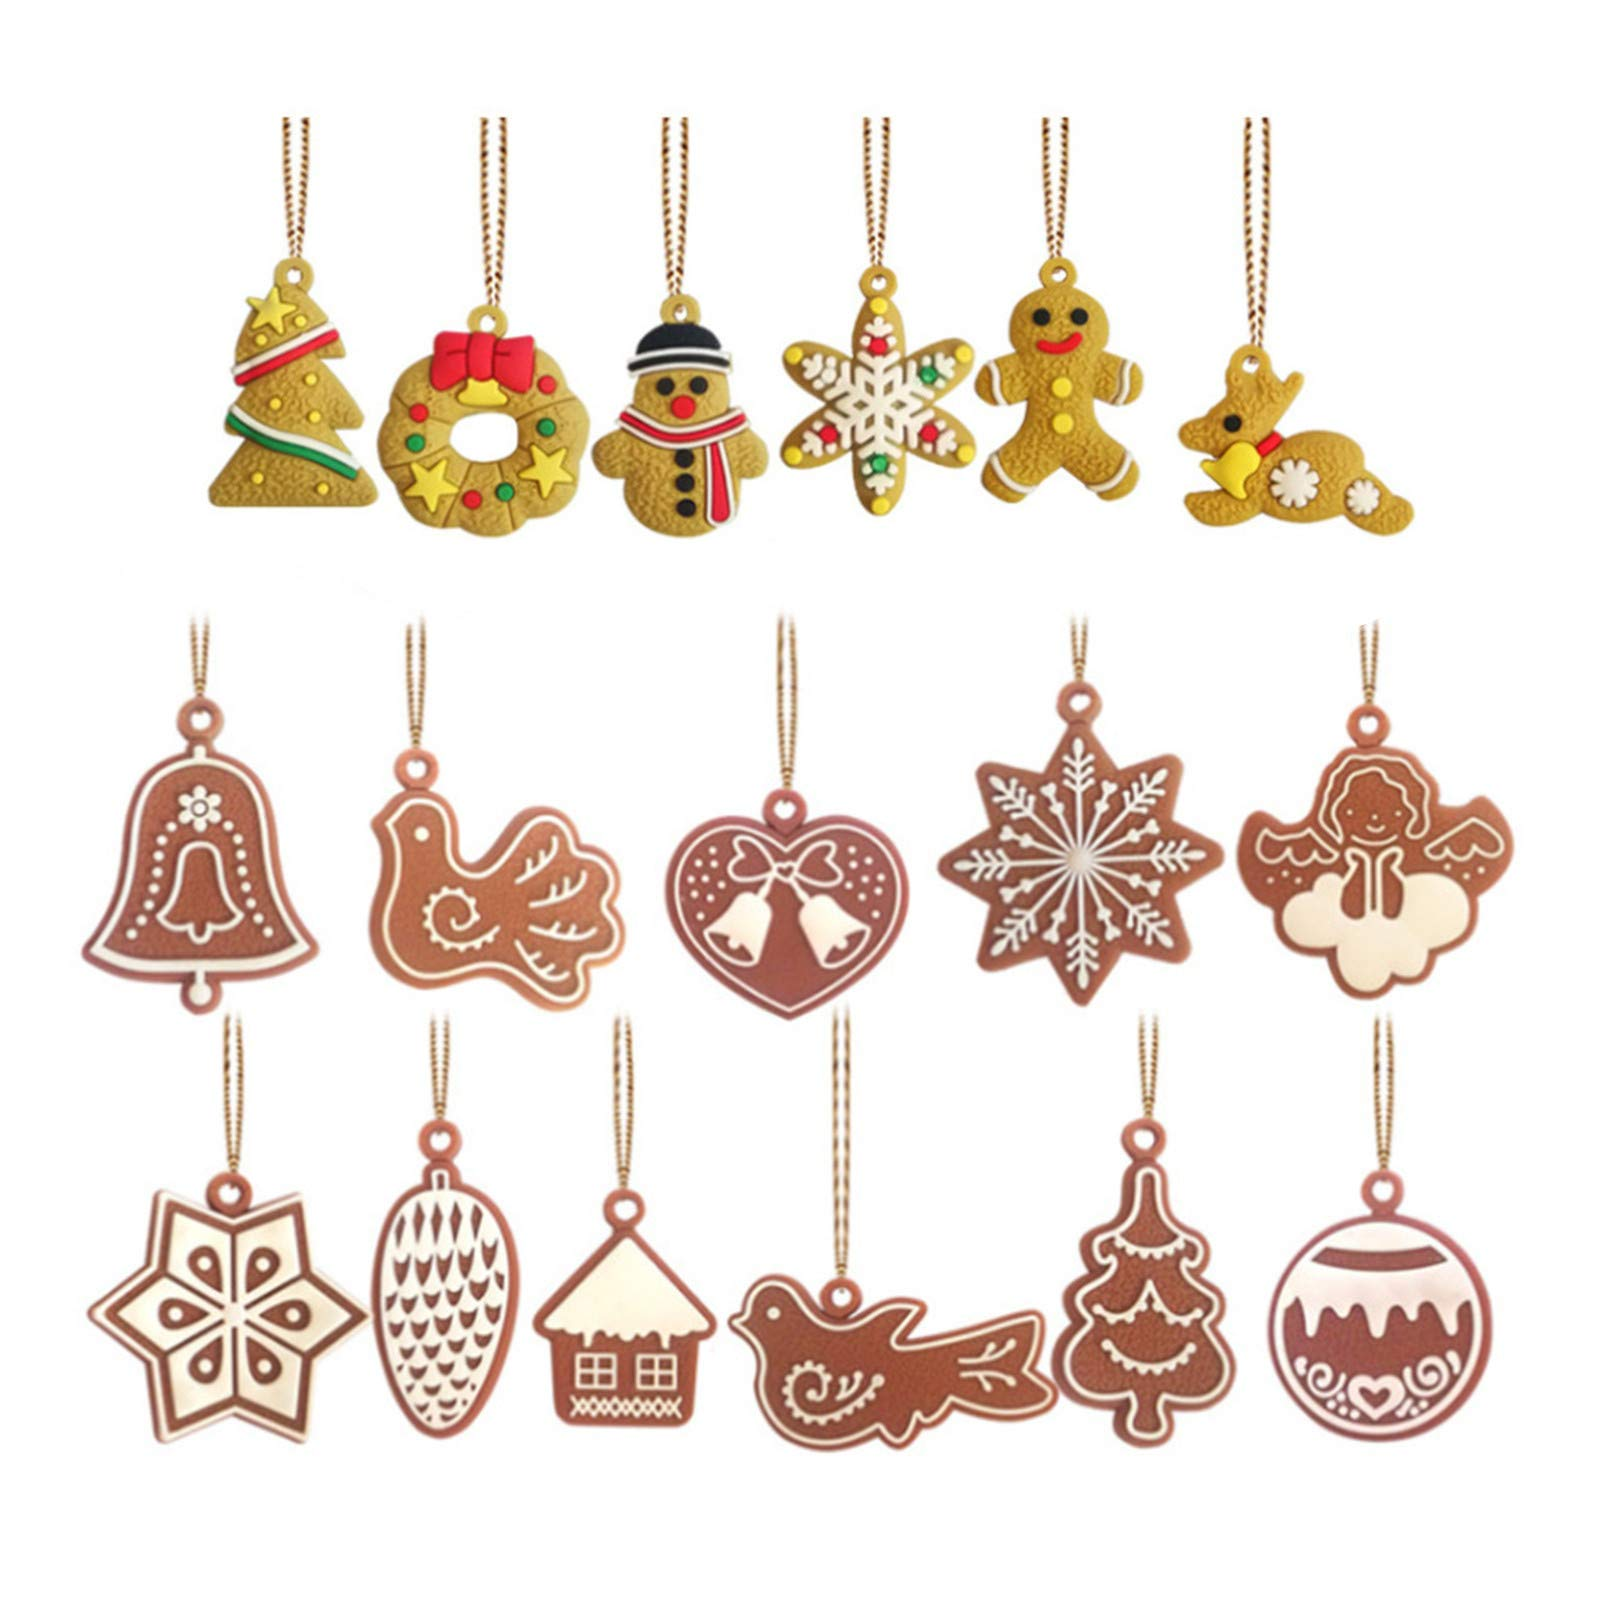 Elionless MINI Christmas Tree Ornaments,17 Pieces Small Christmas Tree decoration Traditional Ginger Man Snowflake Snowman Reindeer Xmas Hanging Charms Pendant